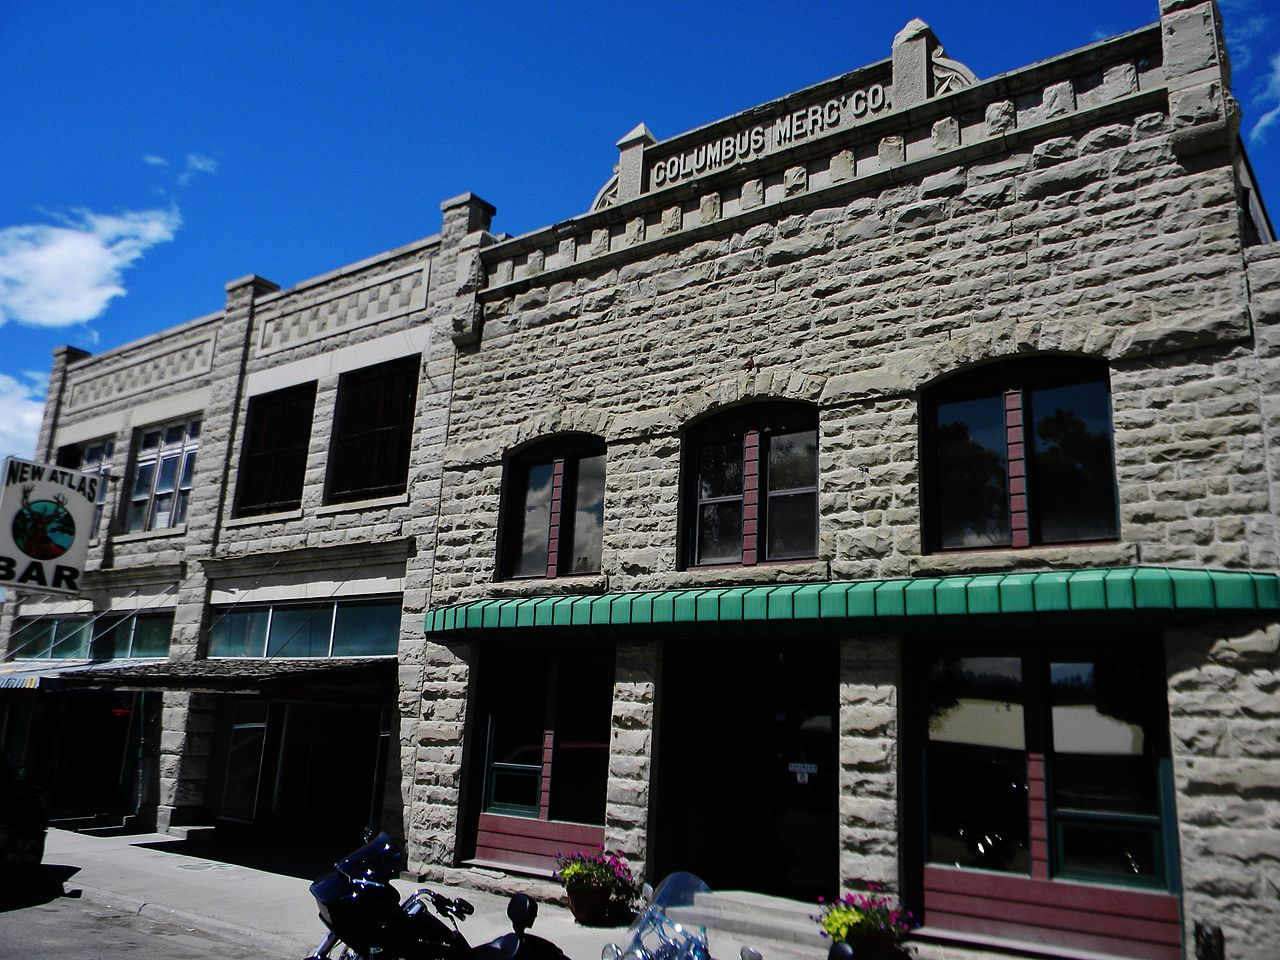 The Atlas Block Building was constructed in 1916 and remained a fixture in Columbus ever since.